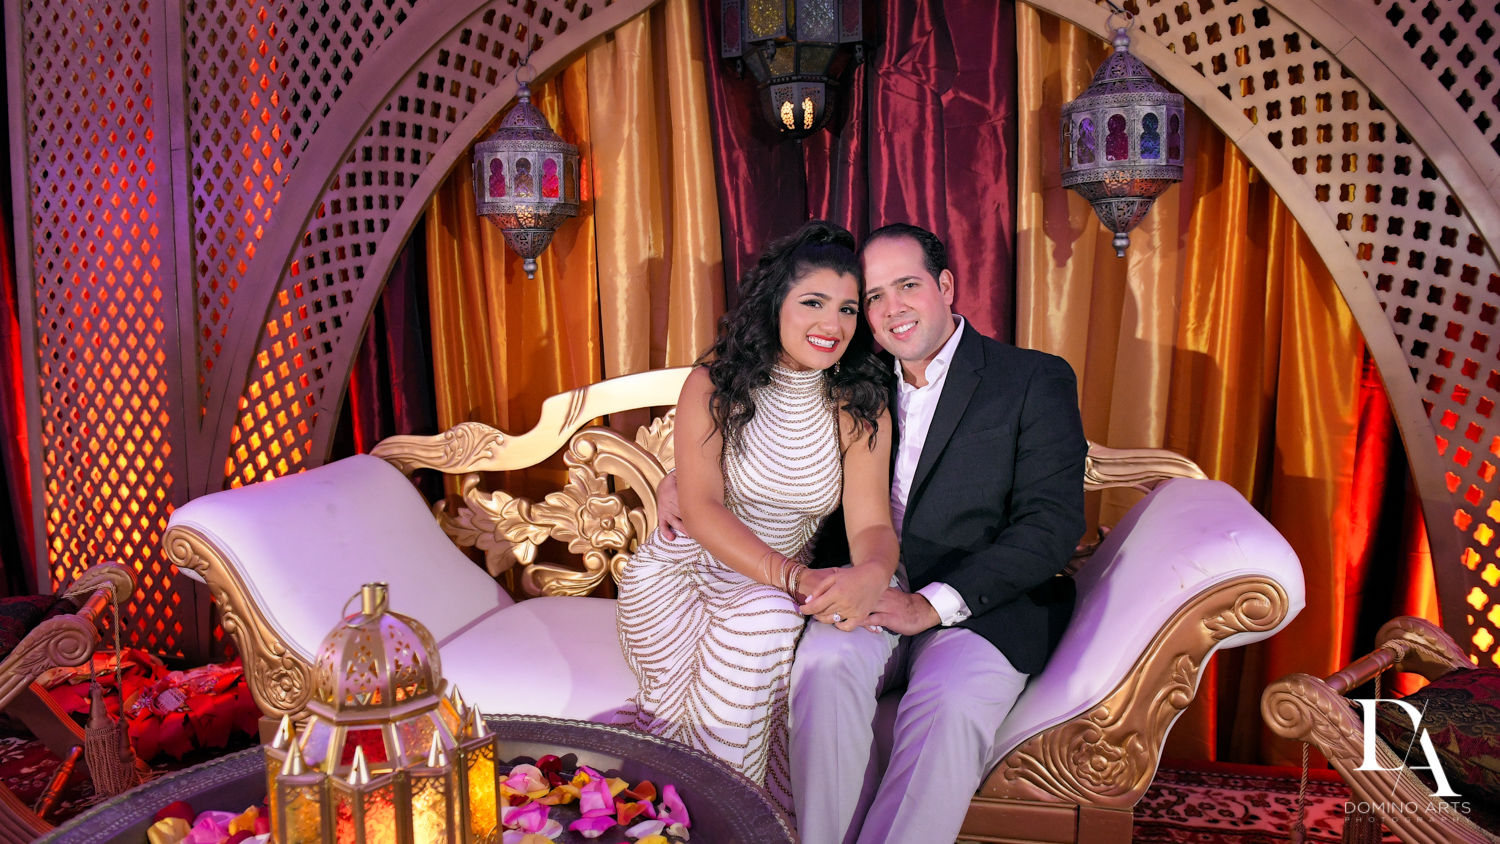 romantic couple at Authentic Morrocan Jewish Henna Party by Domino Arts Photography